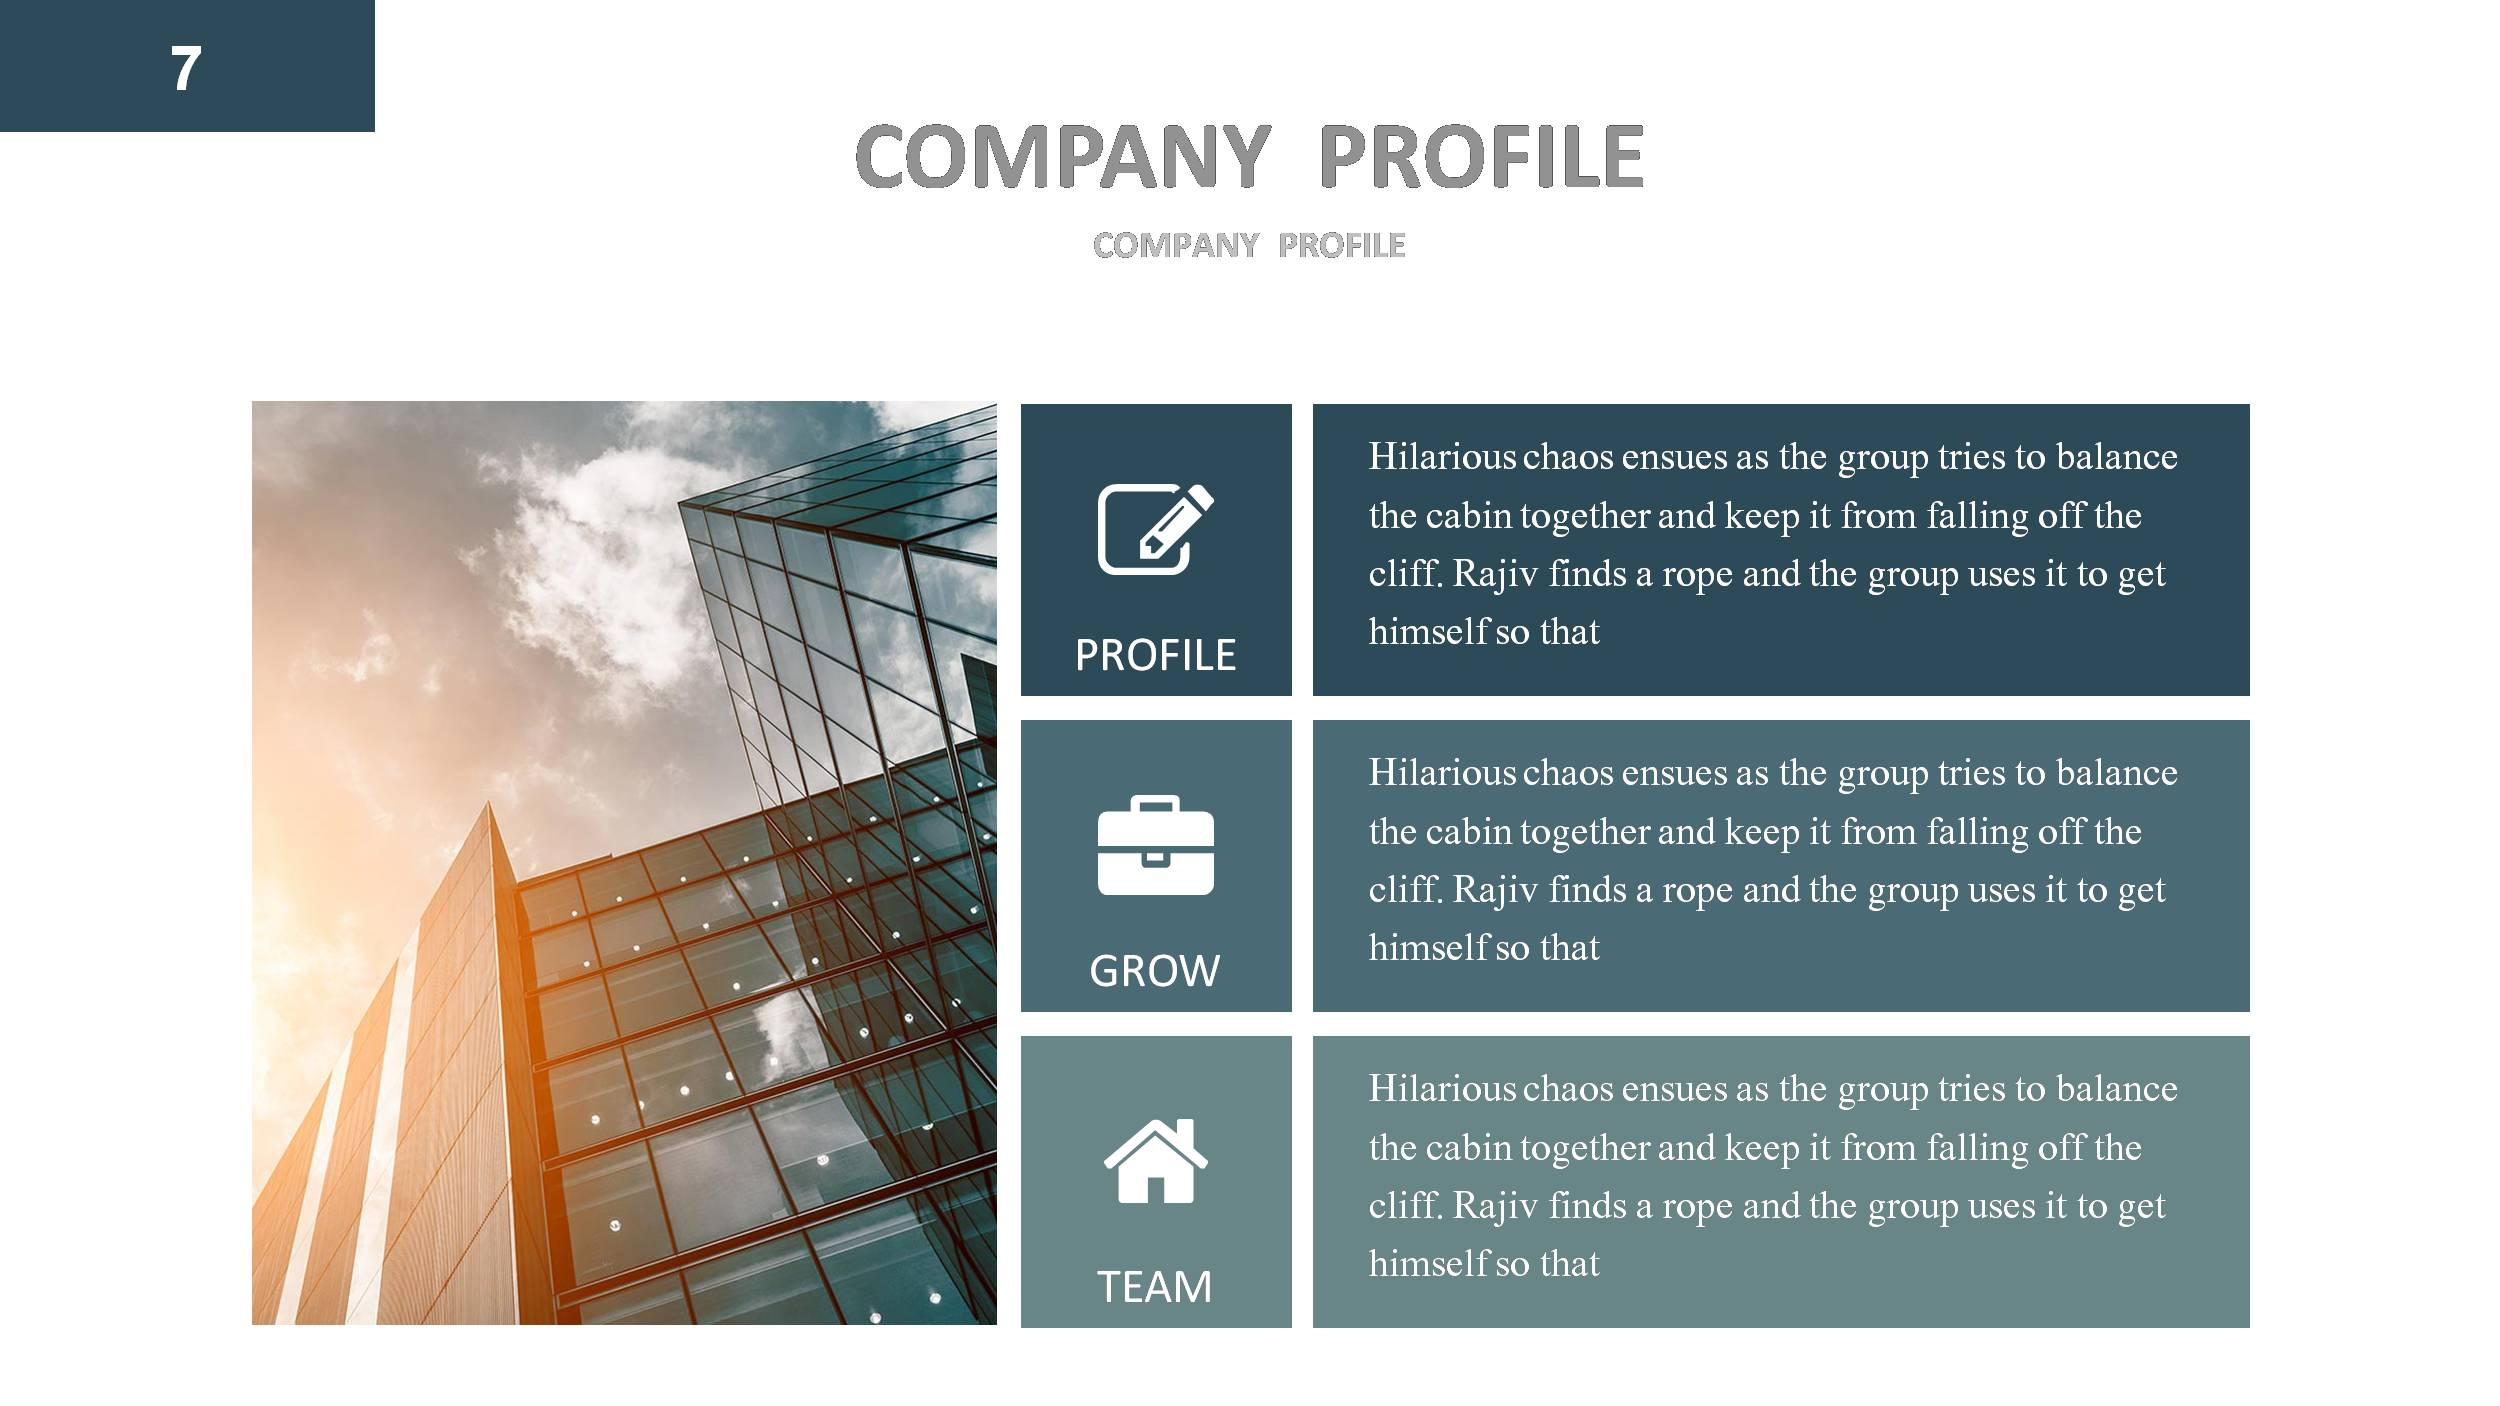 Company profile powerpoint presentation template by for How to make a company profile template